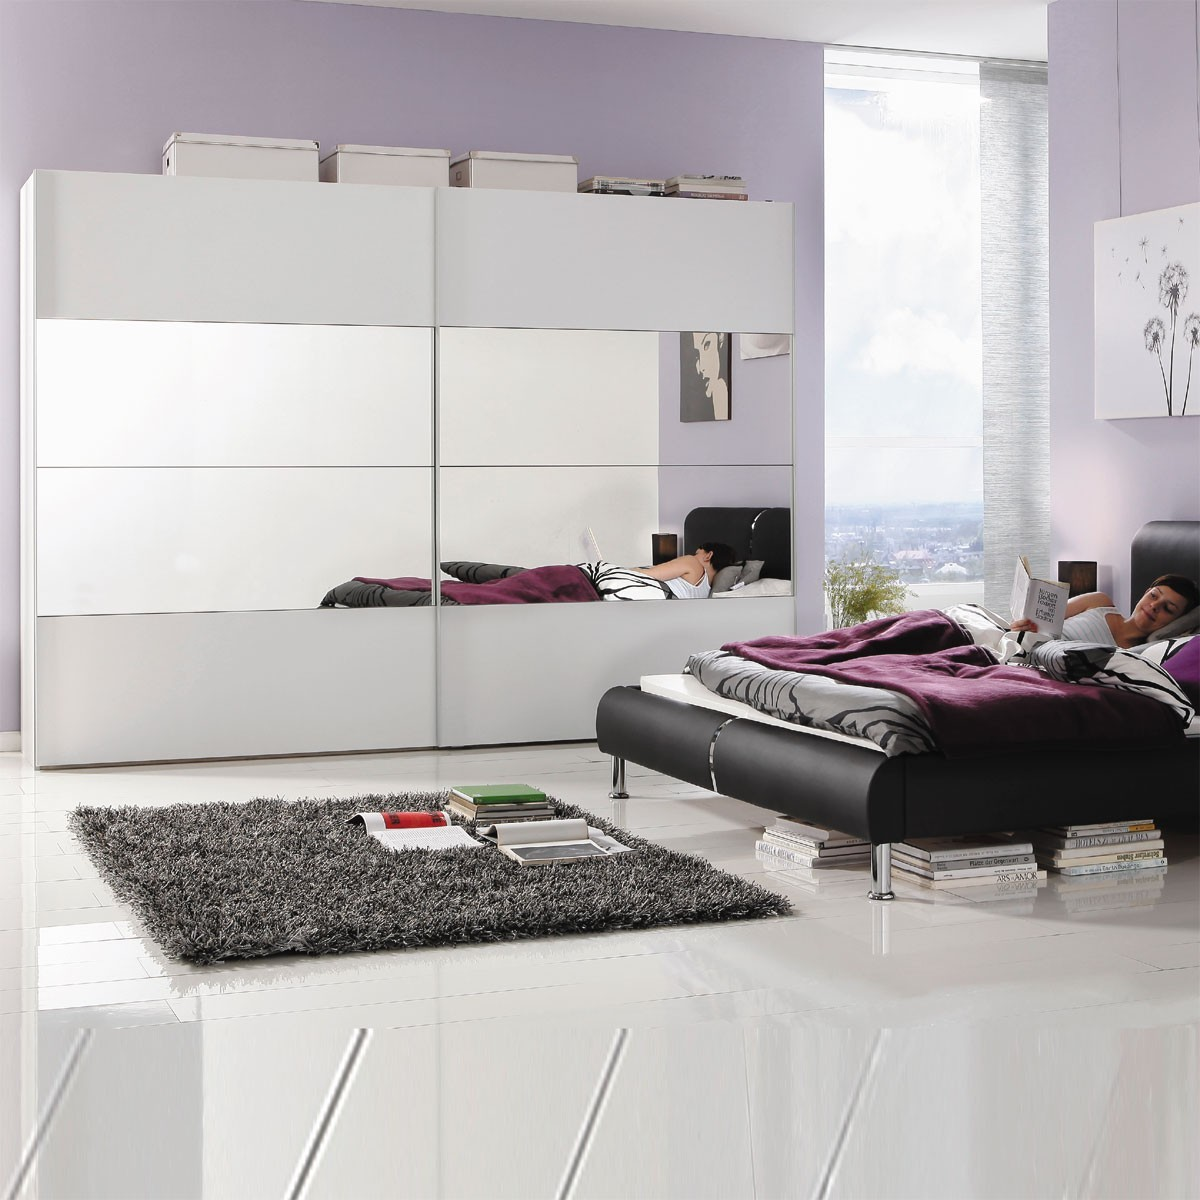 schwebet renschrank kleiderschrank schlafzimmer in wei 200 cm breit neu ebay. Black Bedroom Furniture Sets. Home Design Ideas